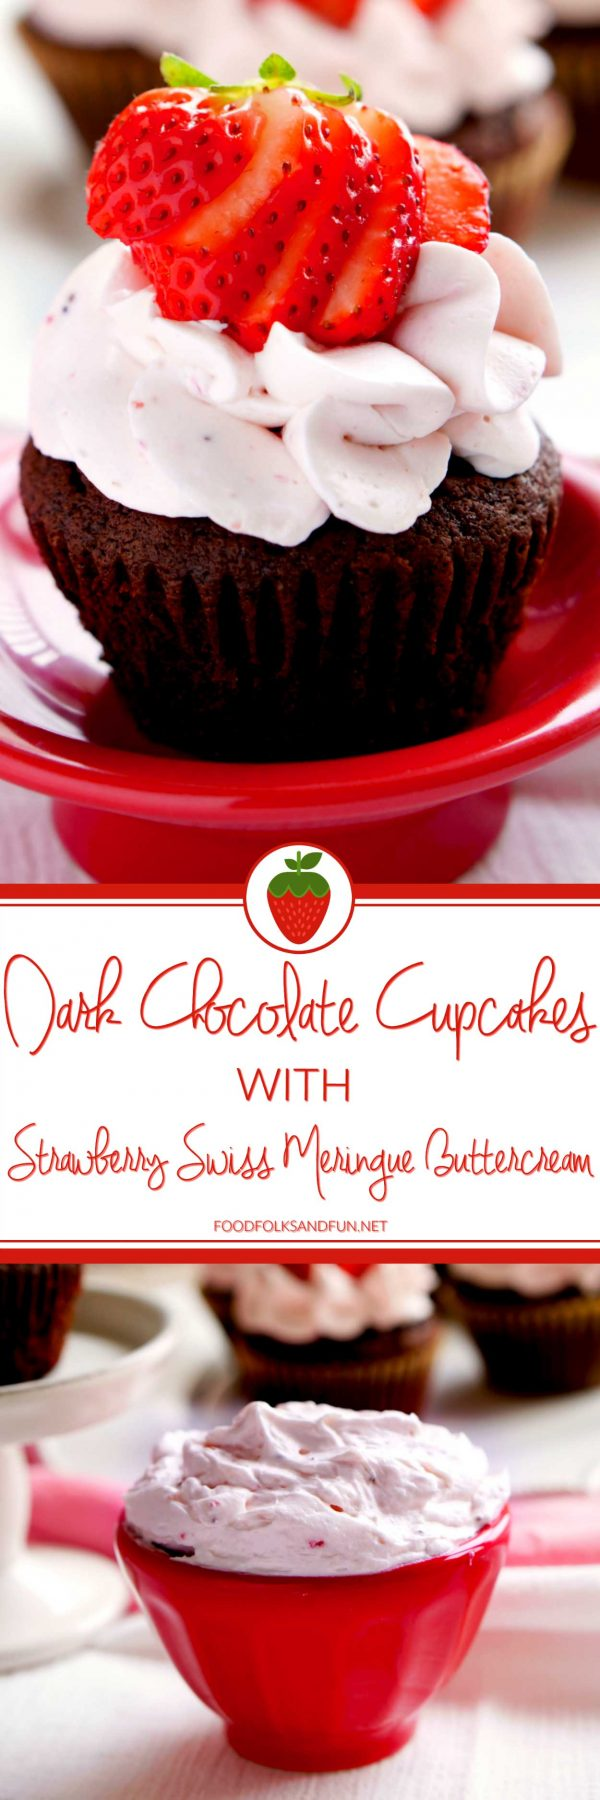 The best Dark Chocolate Cupcakes recipe with Strawberry Swiss Meringue Buttercream.